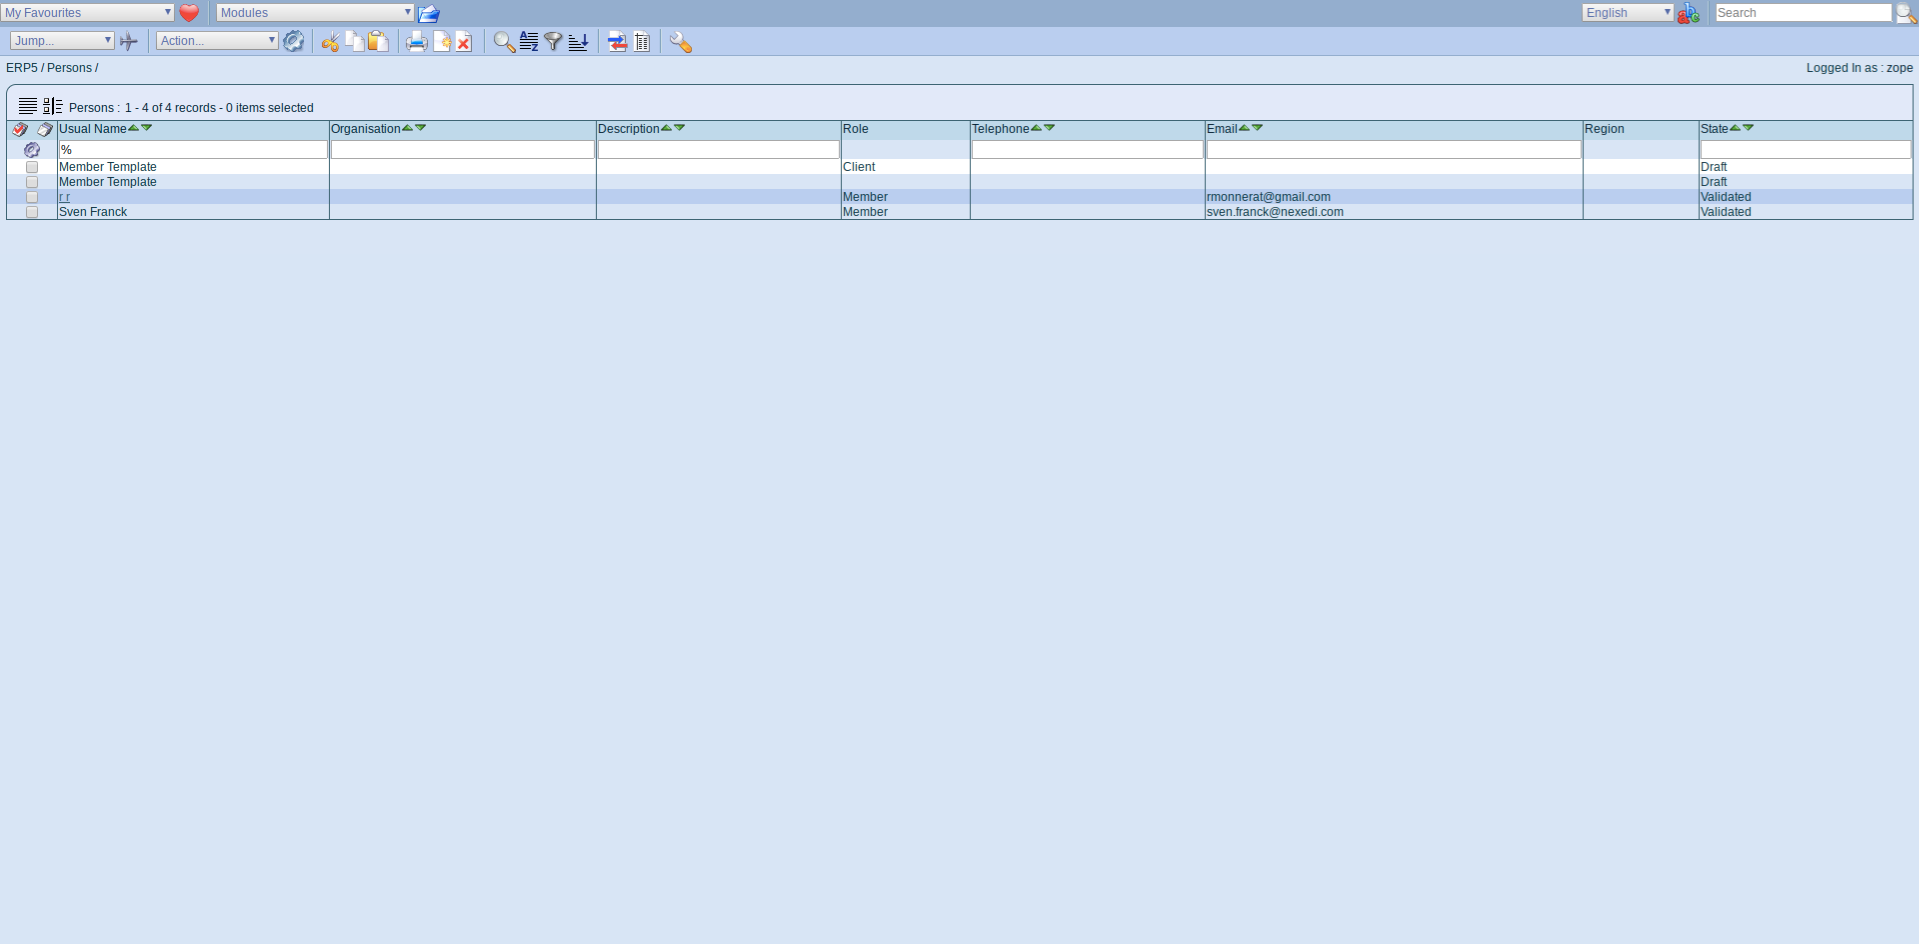 ERP5 Interface - Person Module